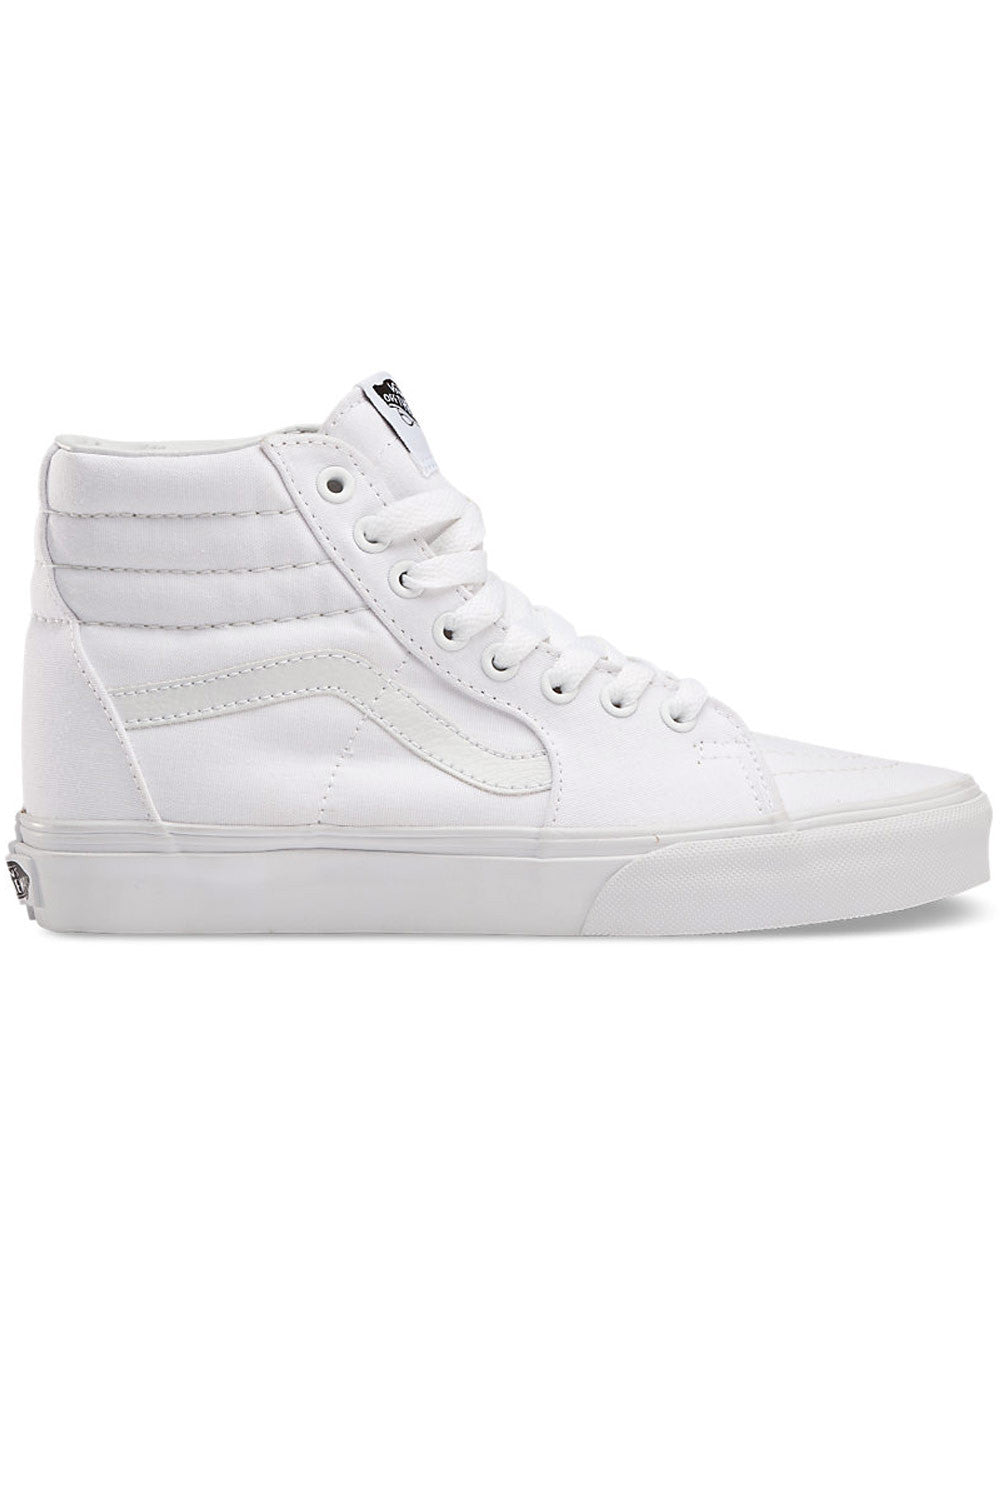 561de6fed78 Vans Sk8-Hi Classic Shoes – Mainland Skate   Surf